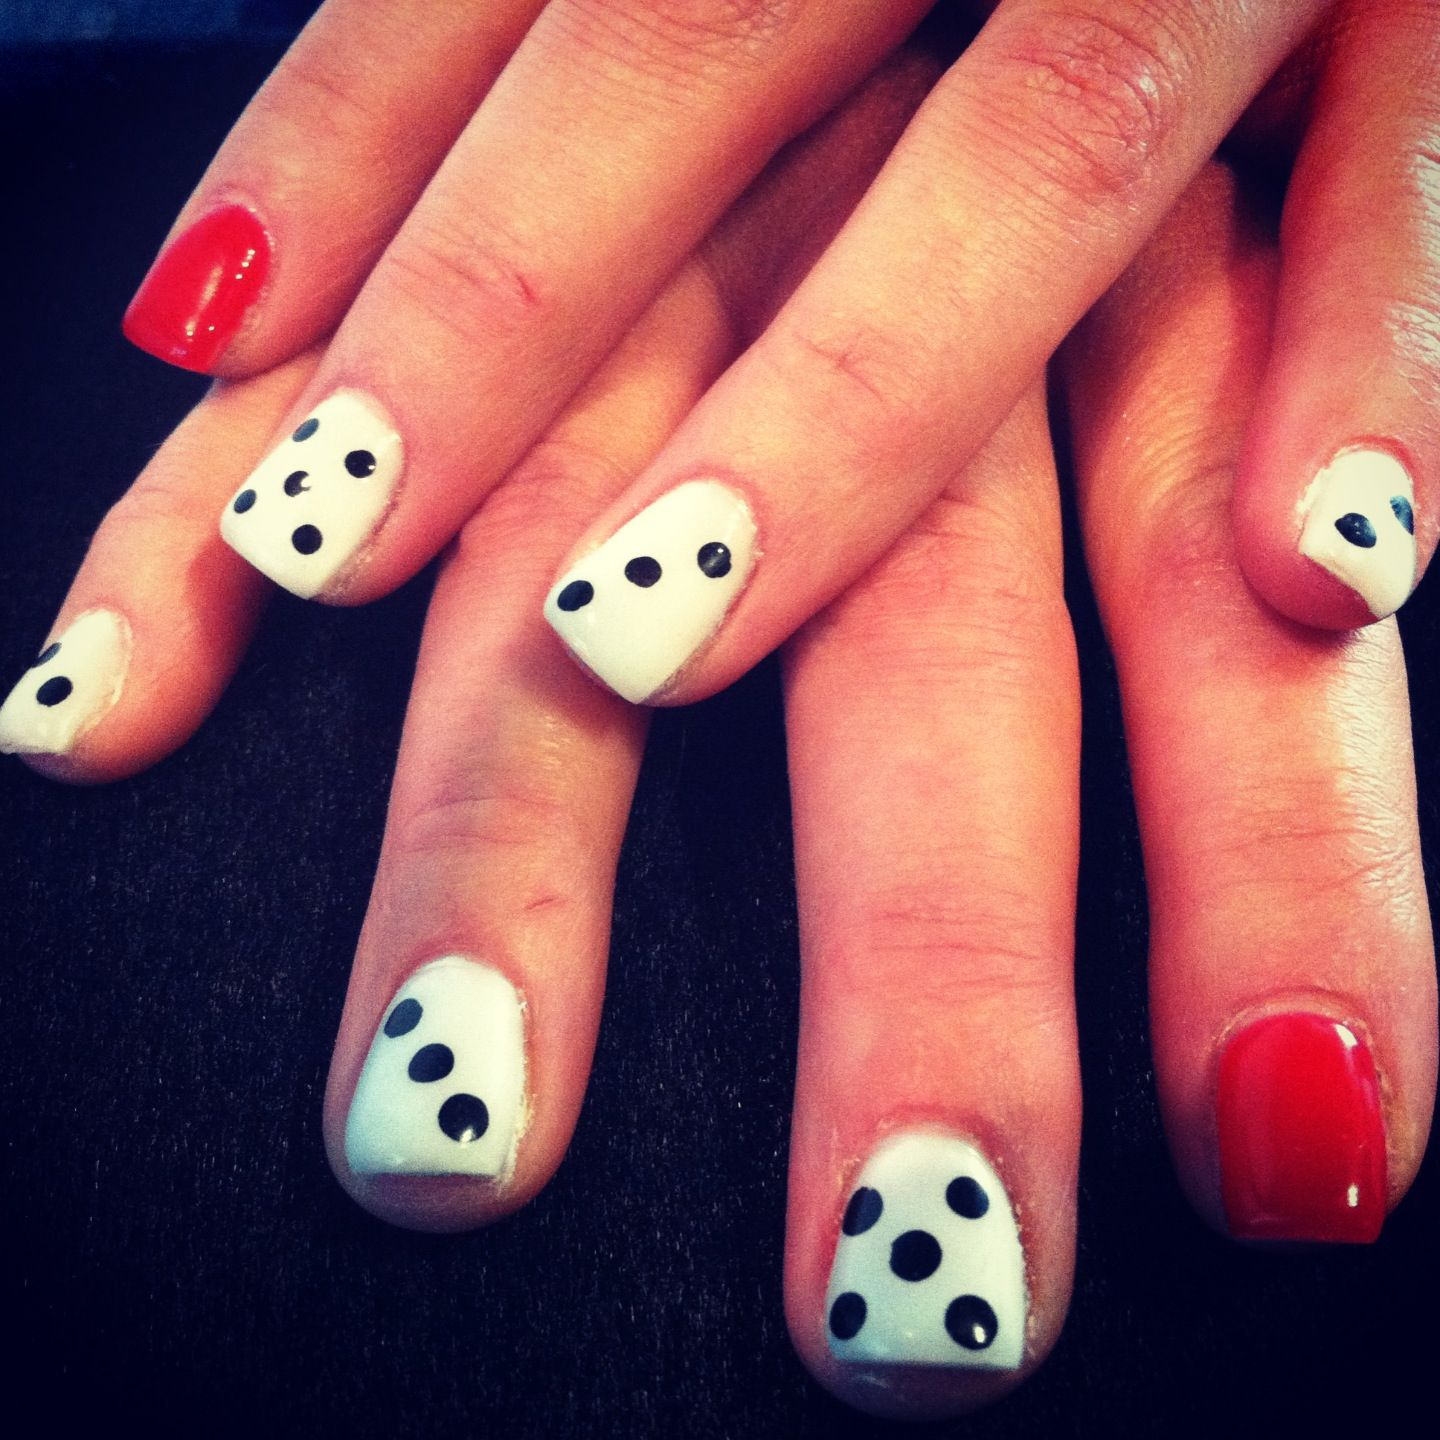 Dice fun nail design for a vegas night vegas baby pinterest dice fun nail design for a vegas night prinsesfo Images